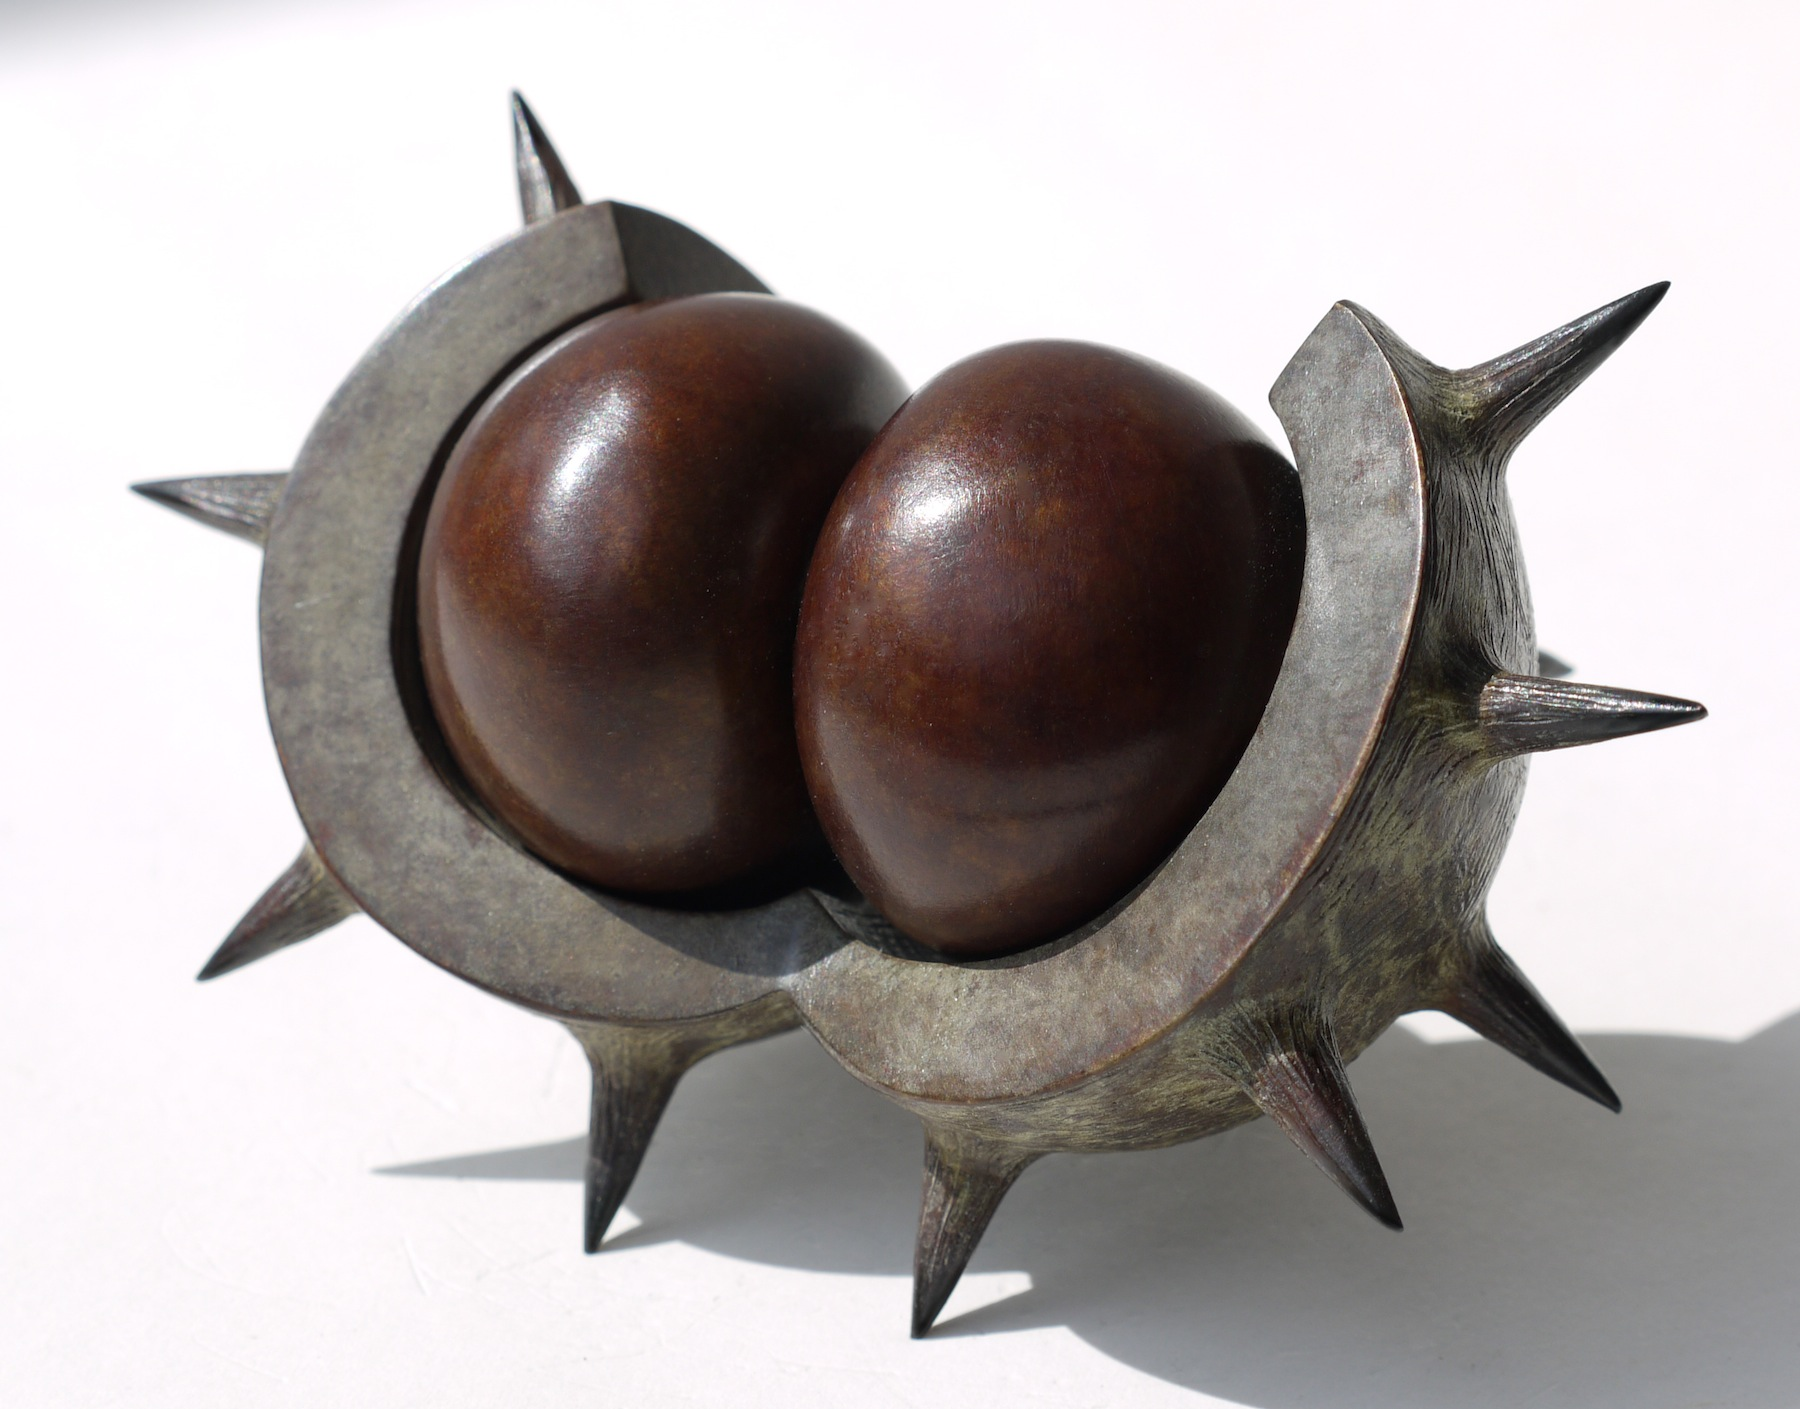 Bound to be Knockers by Mark Richard Hall at the Saffron Walden Gallery